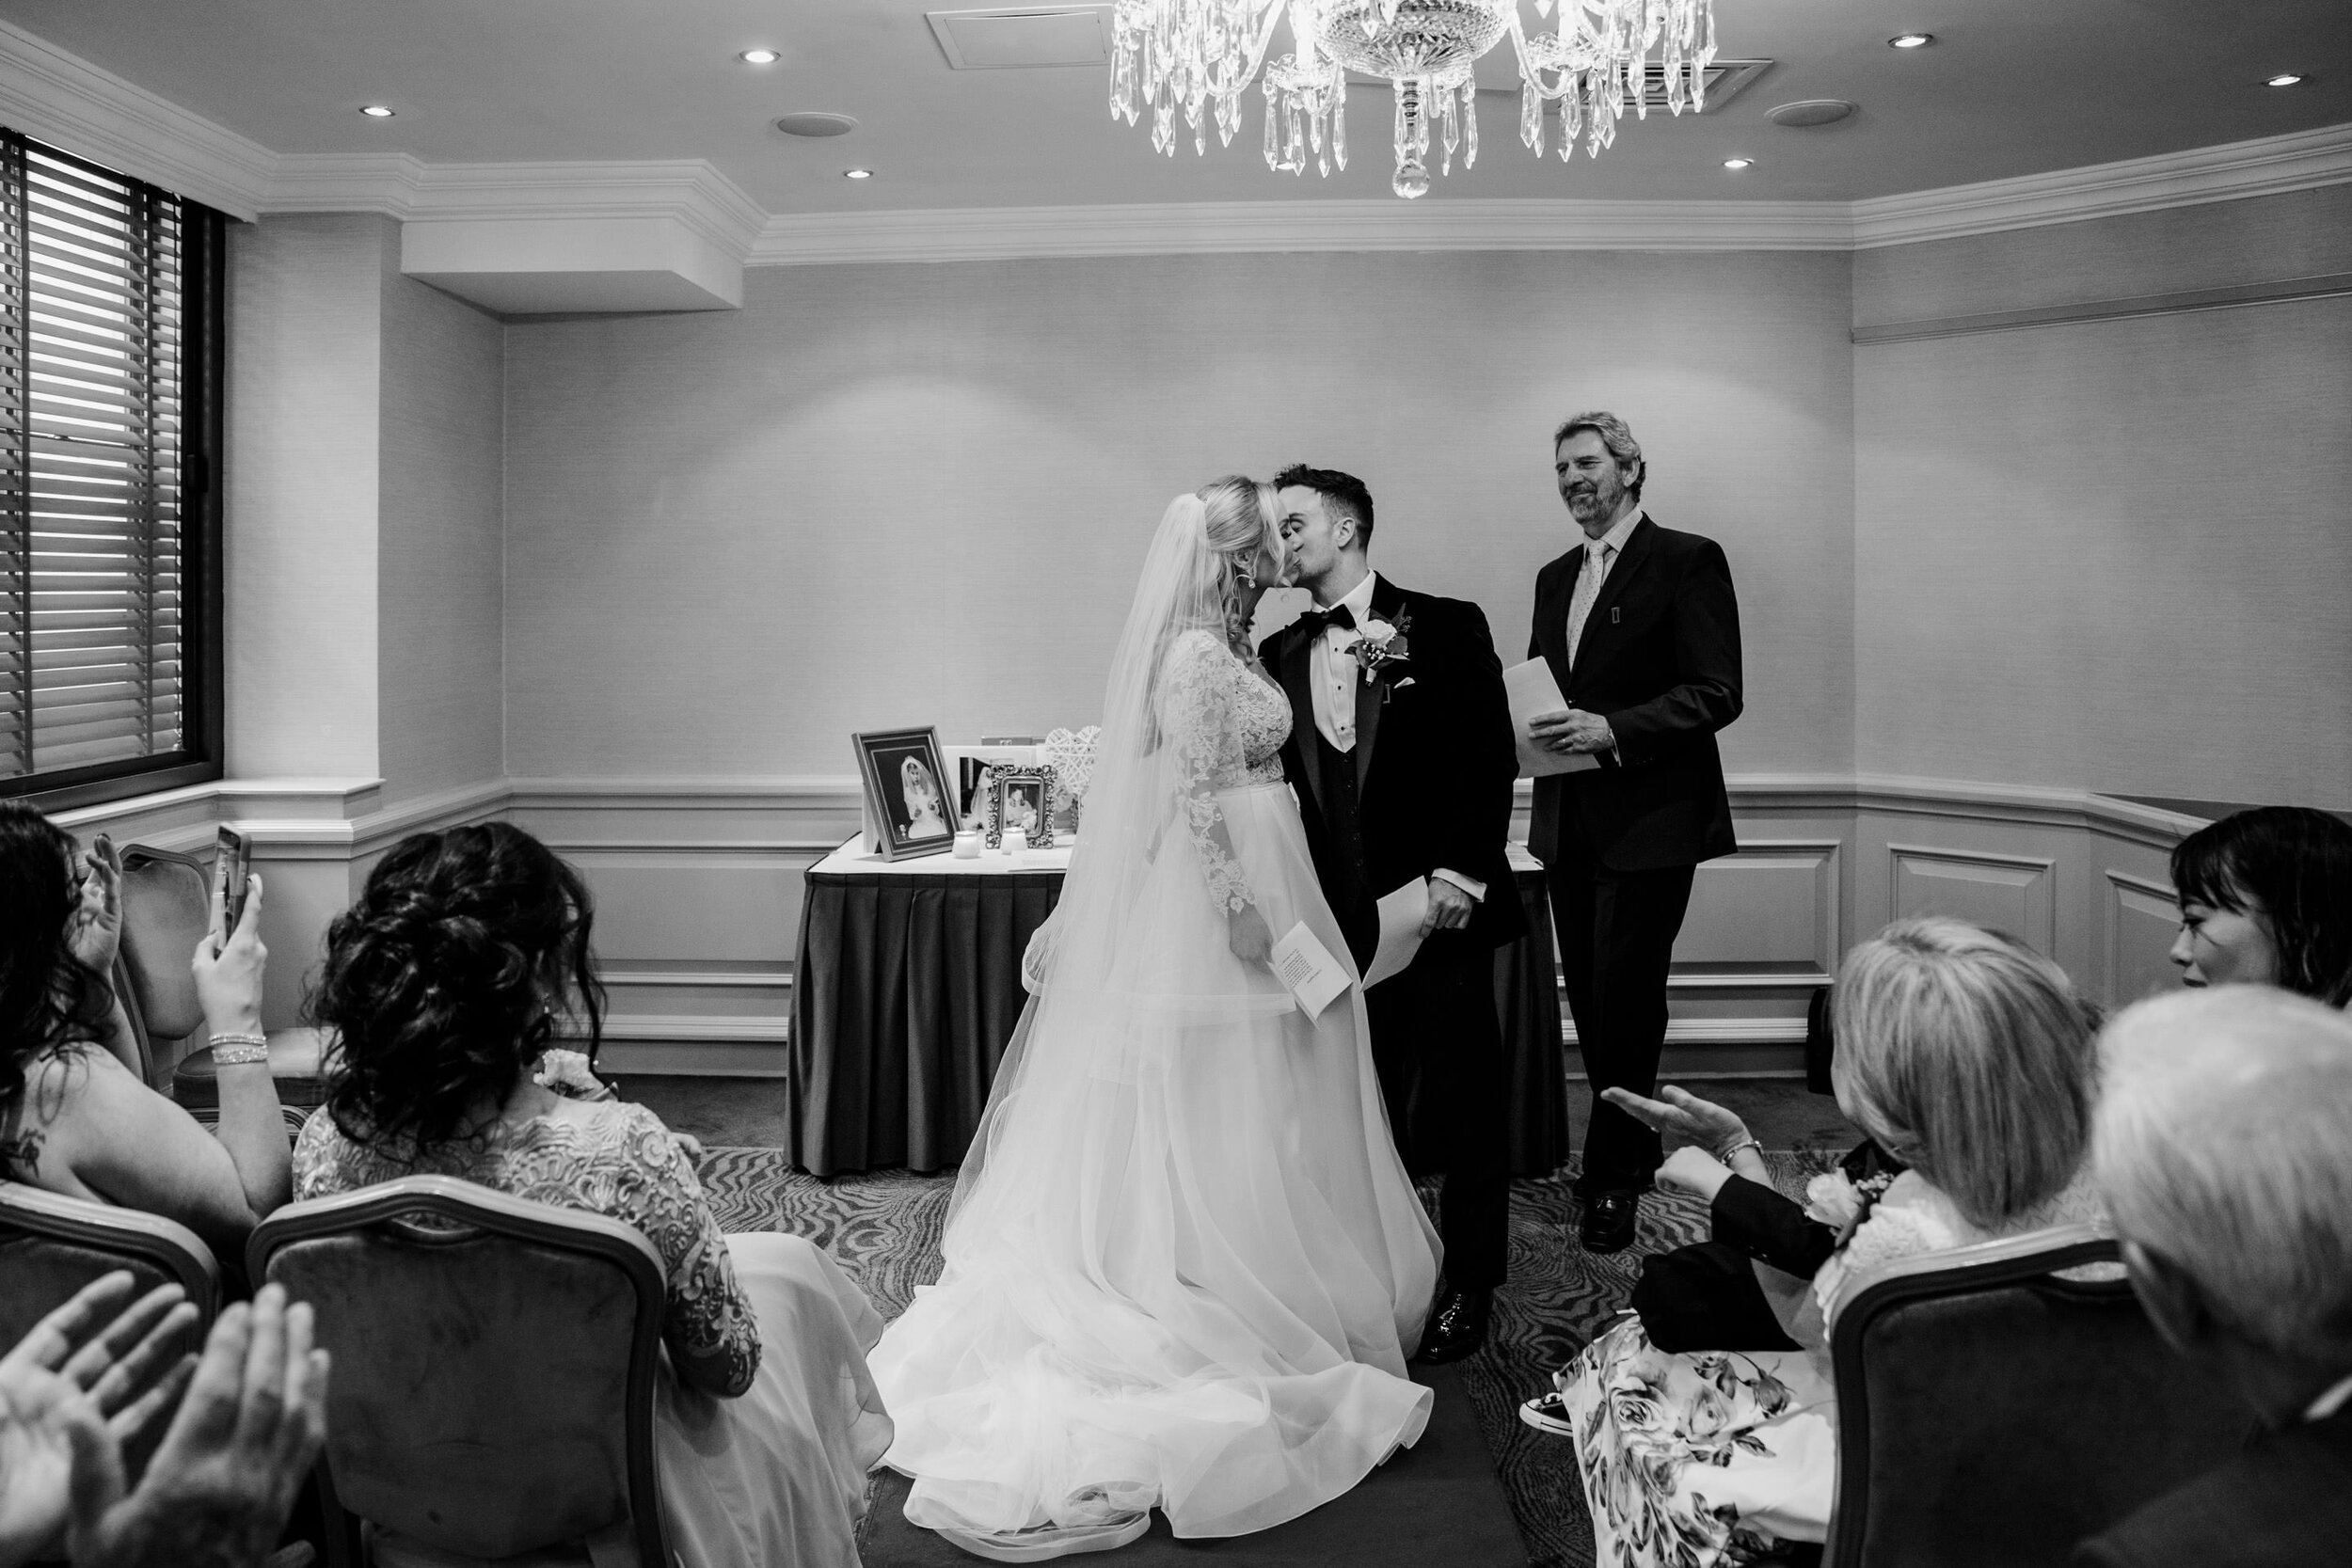 c&s_the_westbury_wedding_photographer_livia_figueiredo_27.jpg